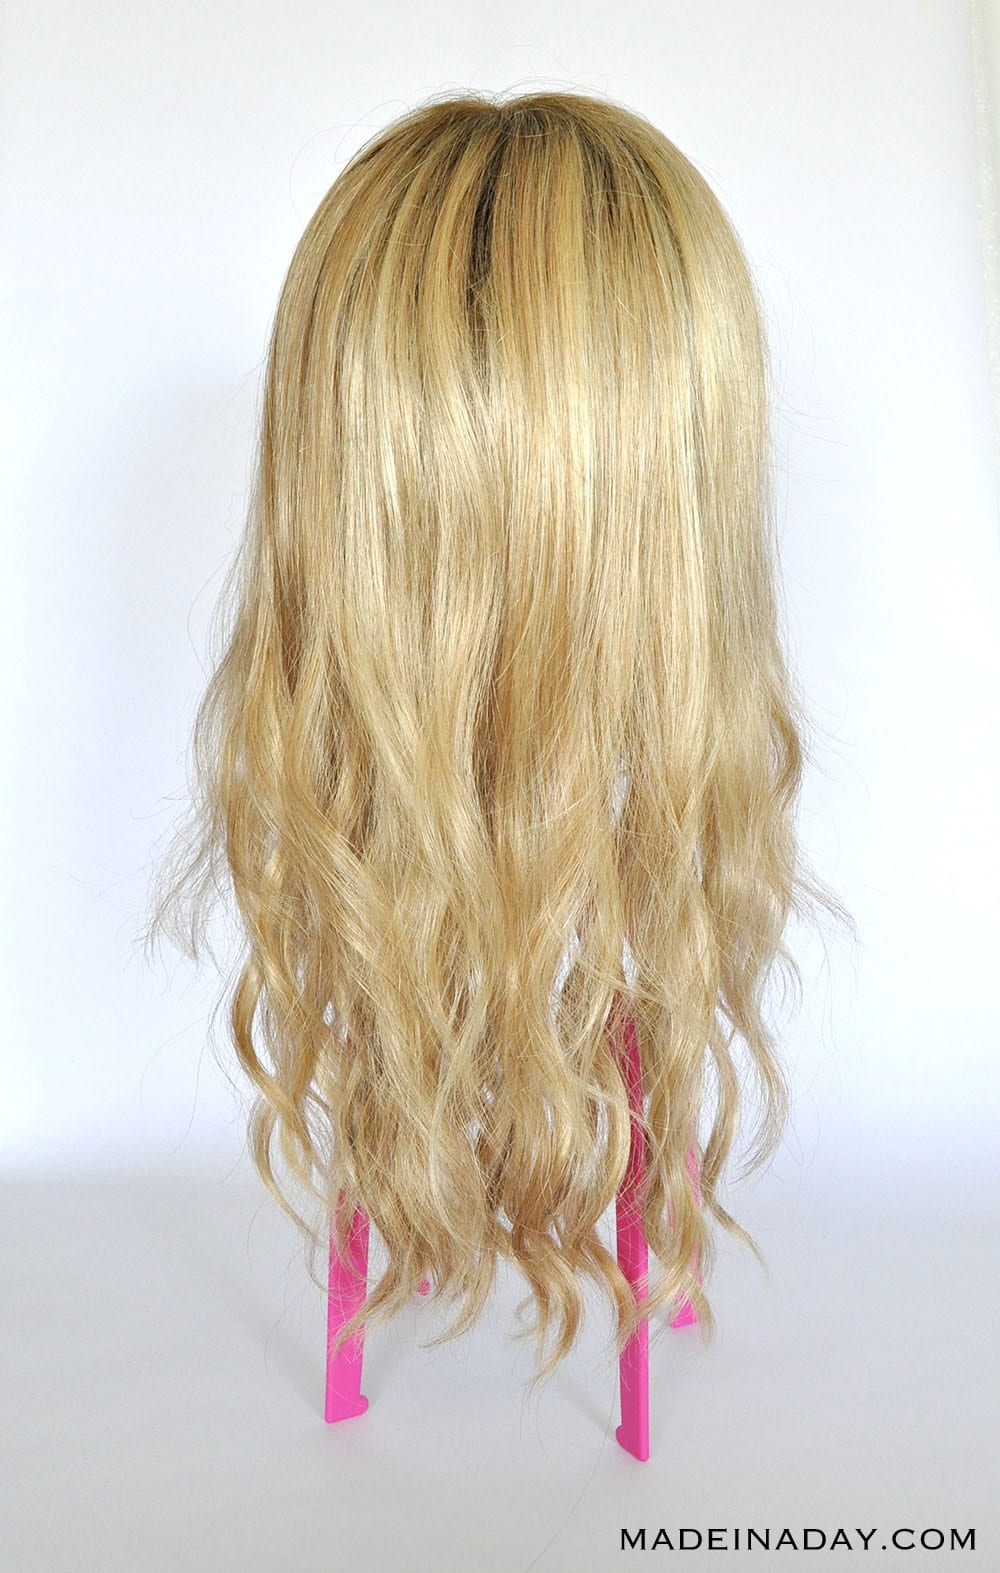 The Fine Thin Hair Dilemma: Halos, Wigs & Toppers • Made in